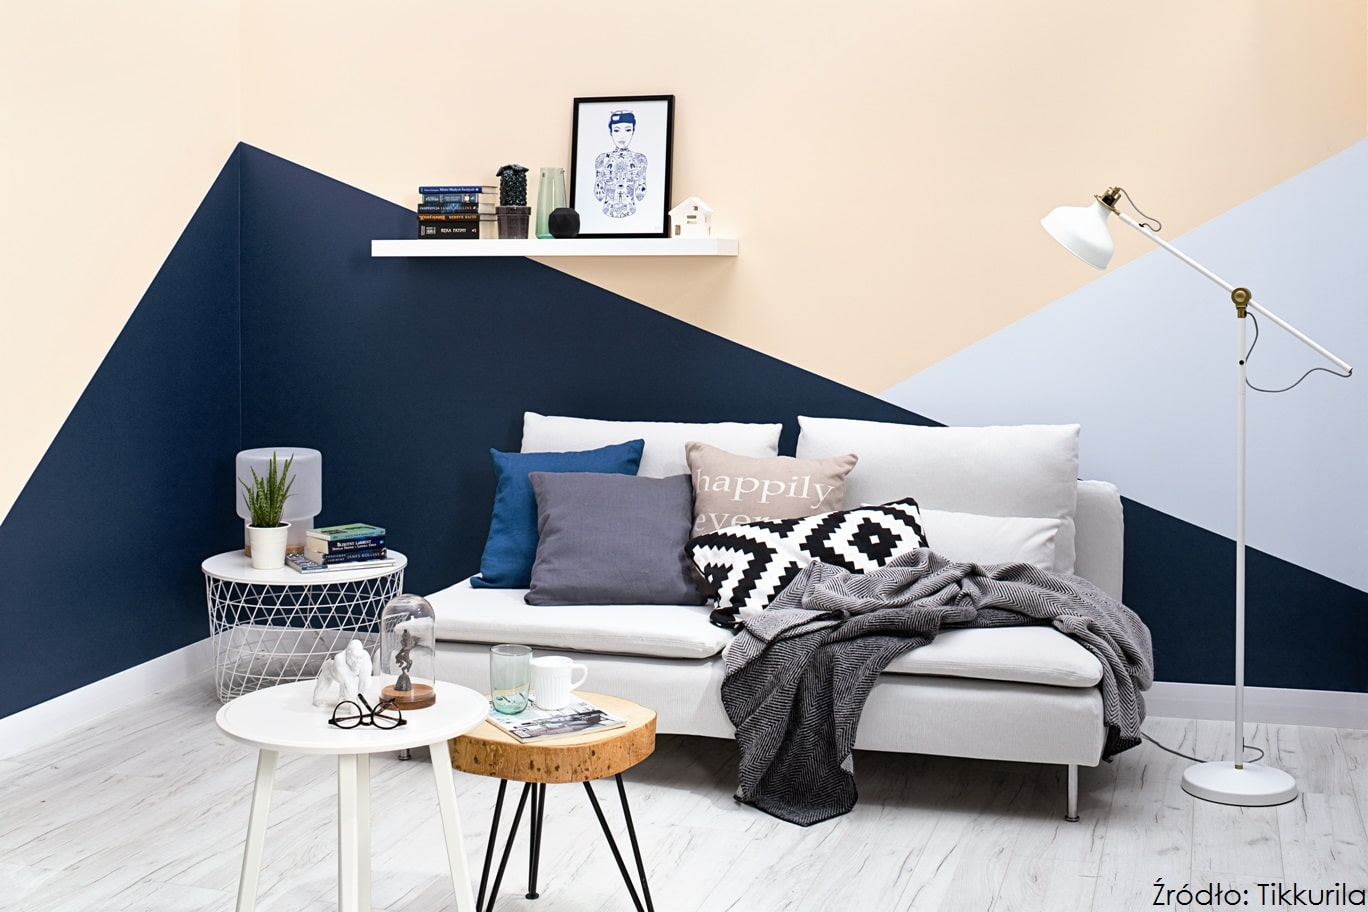 Color Now Clay_Tikkurila Optiva Ceramic Super Matt 3_kolory N429 Denim, Y406 Riviera, F496 Seagull